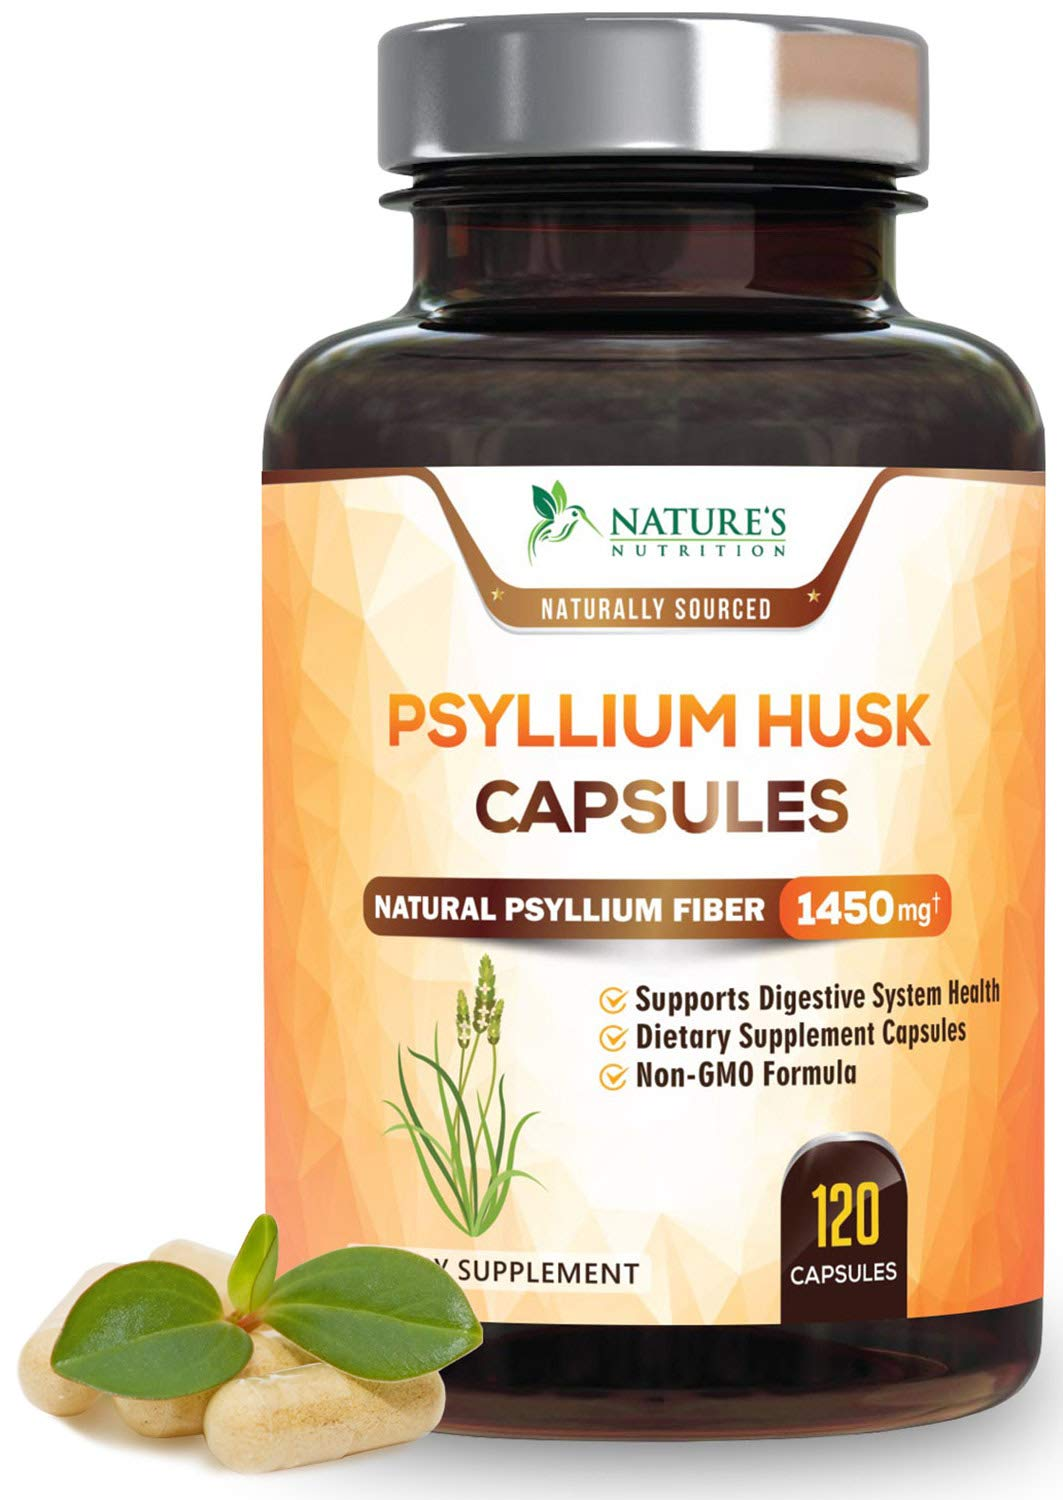 Psyllium Husk Capsules, Highest Potency Dietary Fiber 1450mg - Psyllium Powder Supplement, 100% Soluble Pills, Helps Constipation, Digestion, Intestinal Health and Natural Weight Loss - 120 Capsules by Nature's Nutrition